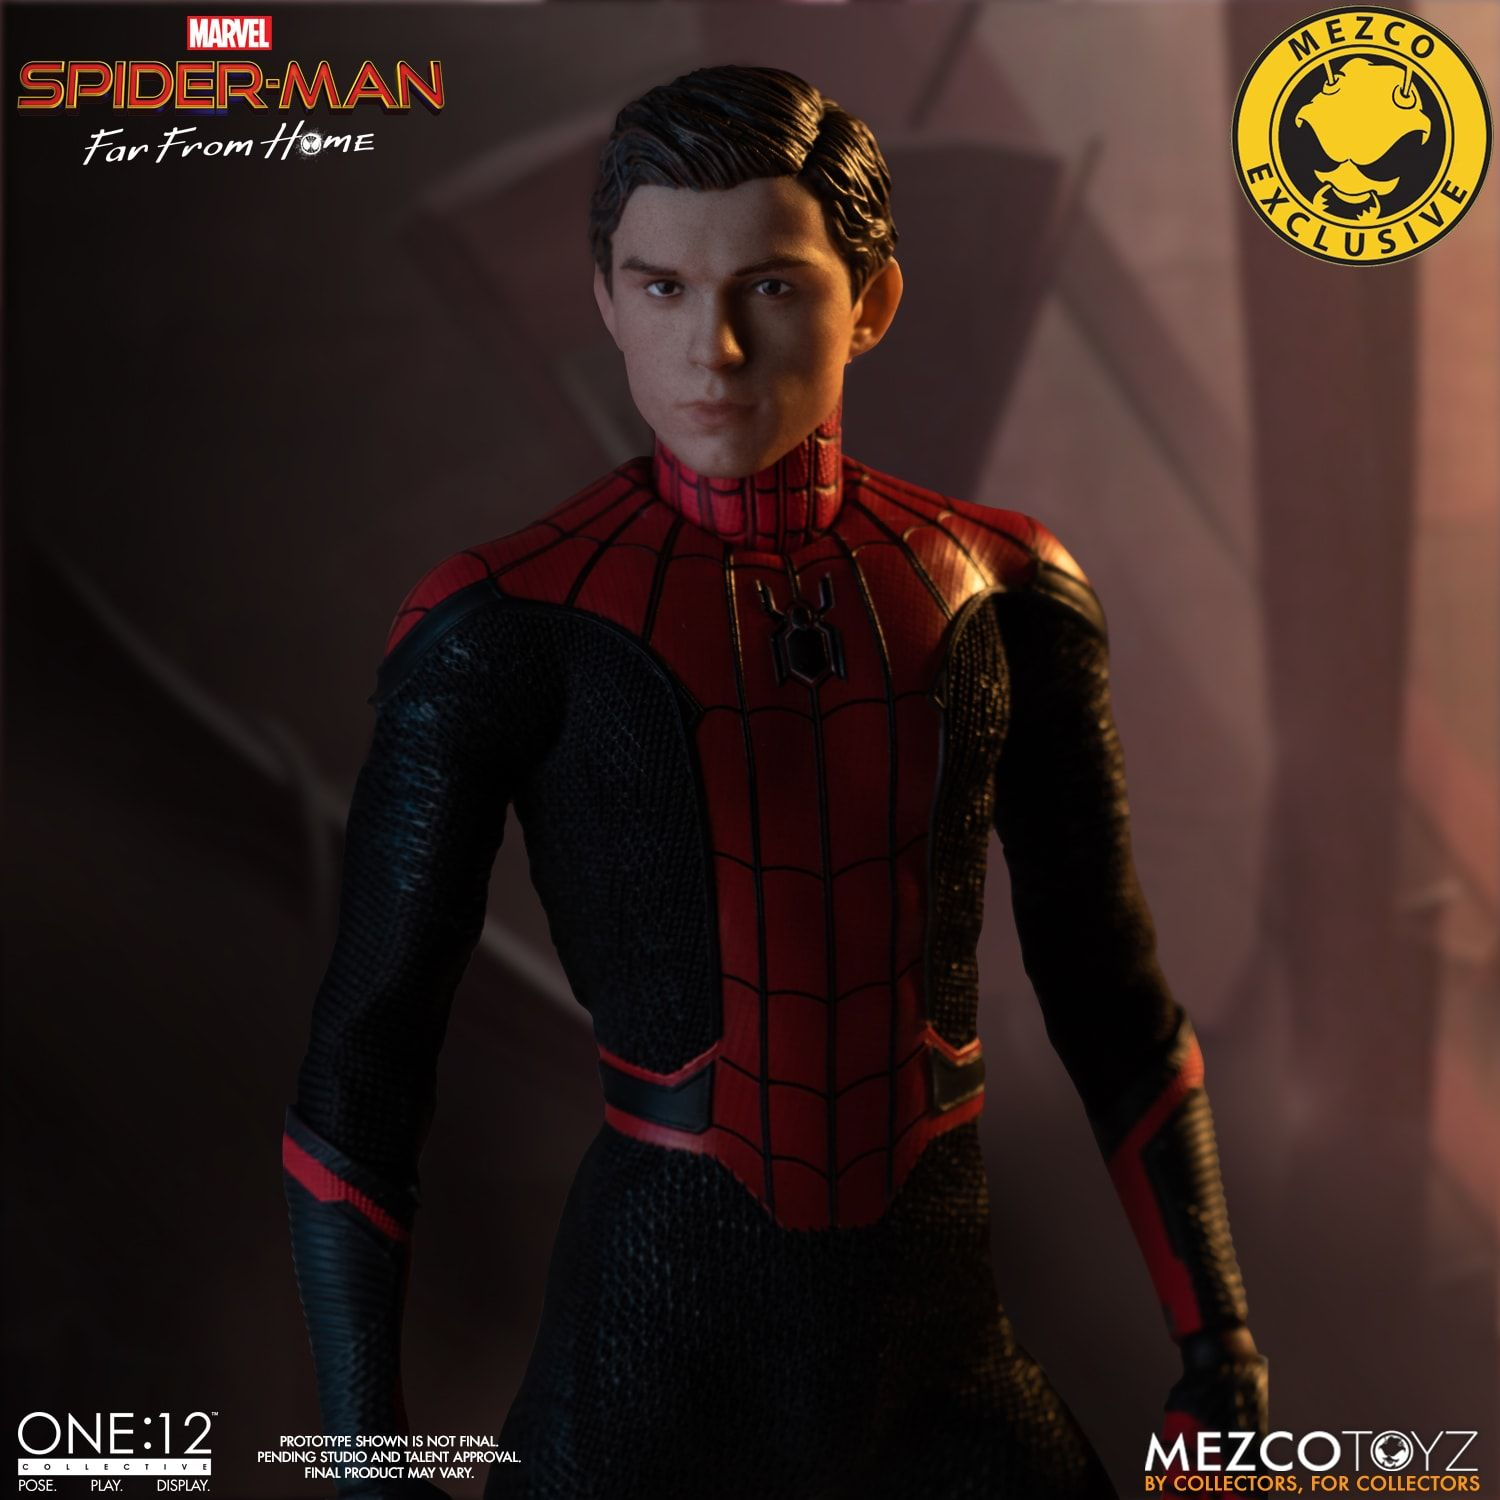 Marvel Spider-Man Far From Home Stealth Suit One:12 Figure Mezco PX New 2020